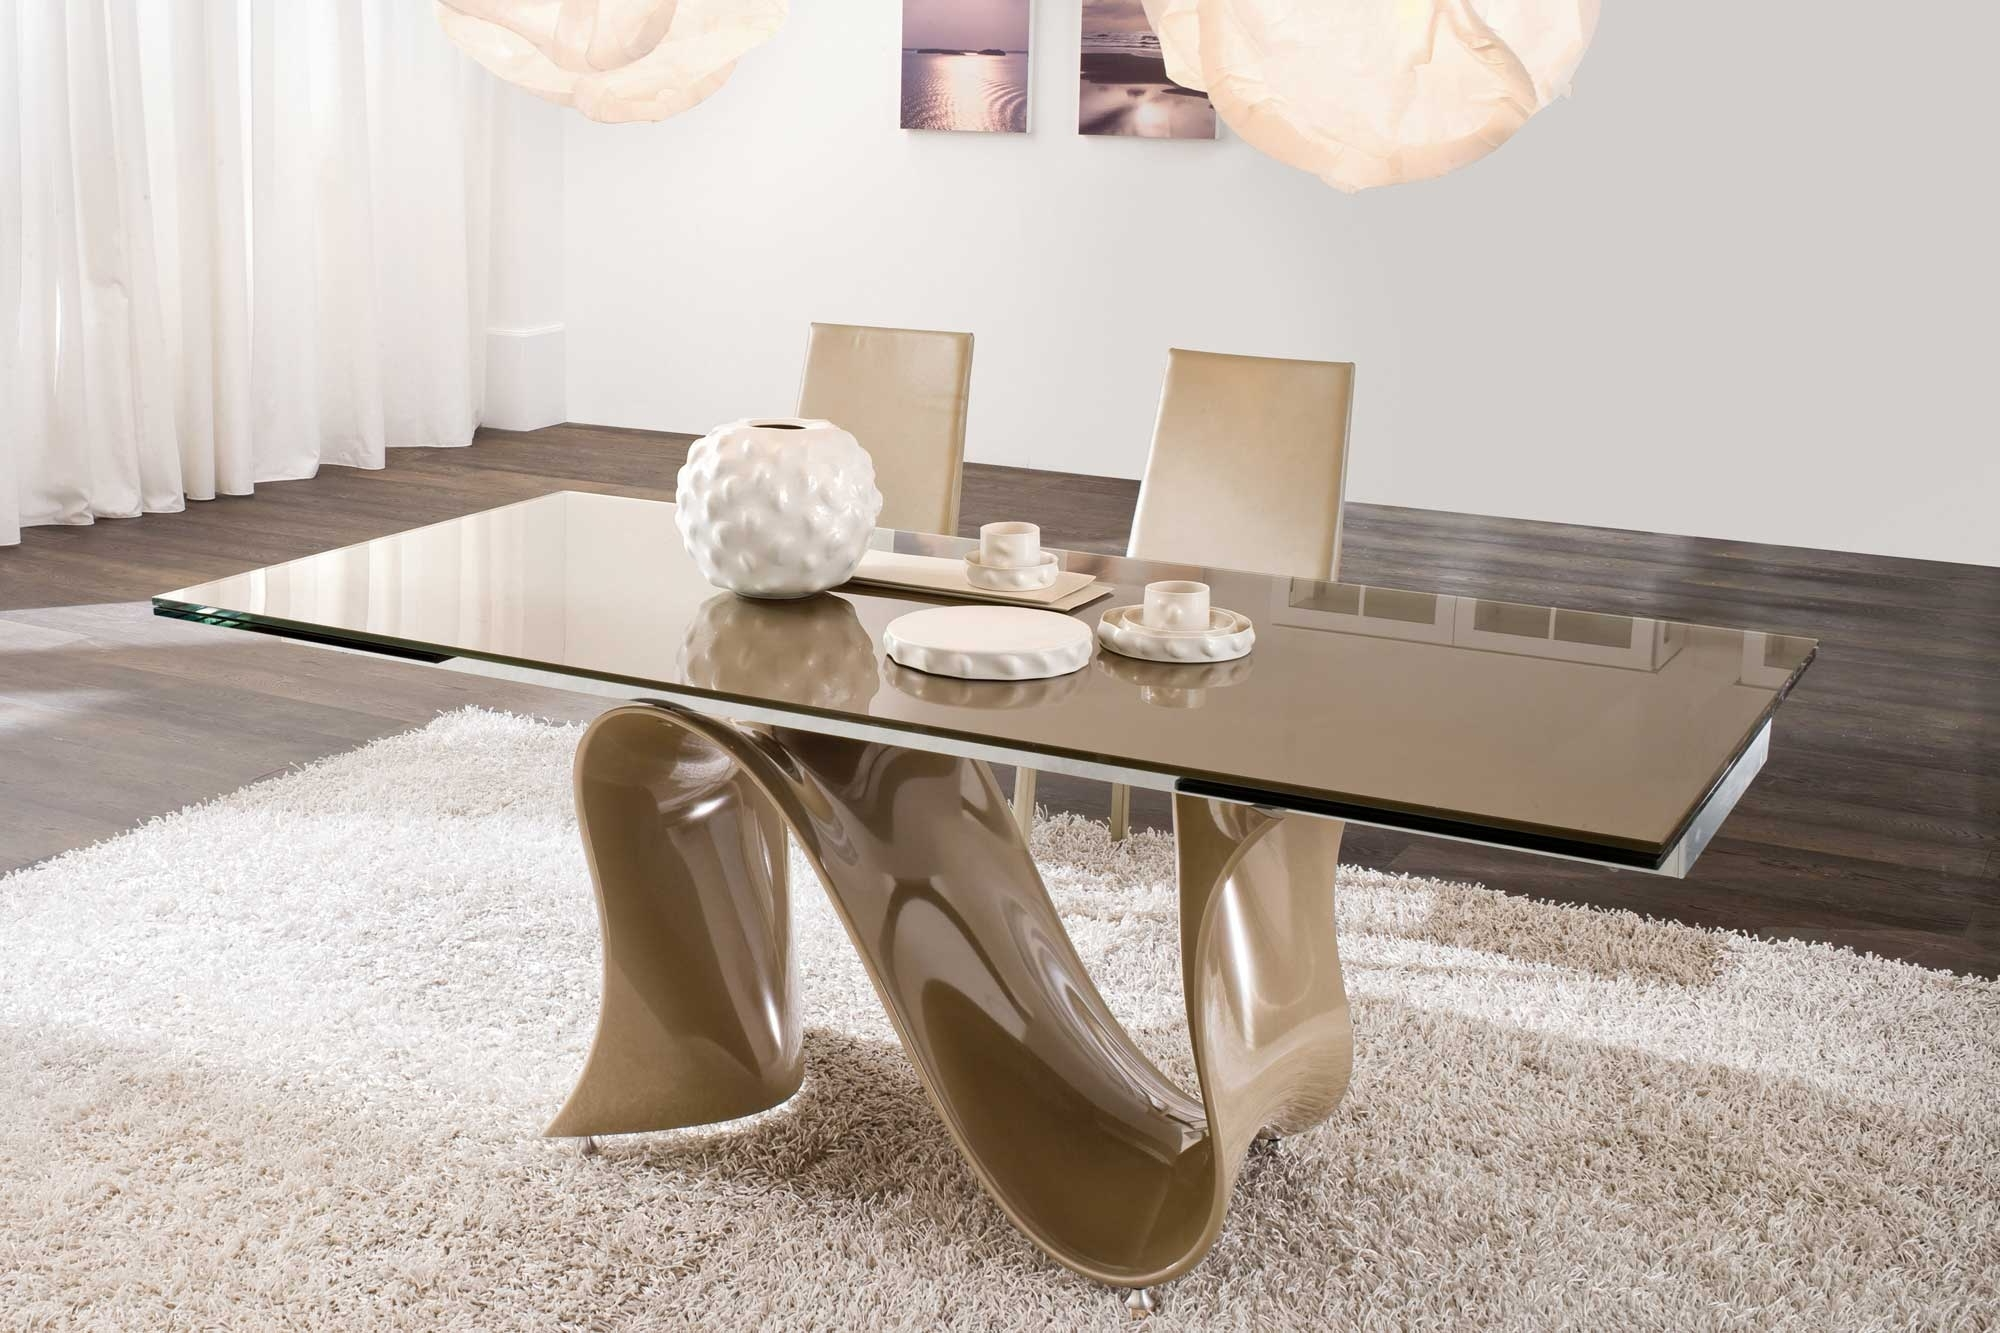 Dining Room Contemporary Furniture Dining Table Contemporary Dinette Throughout 2018 Contemporary Dining Room Tables And Chairs (View 21 of 25)